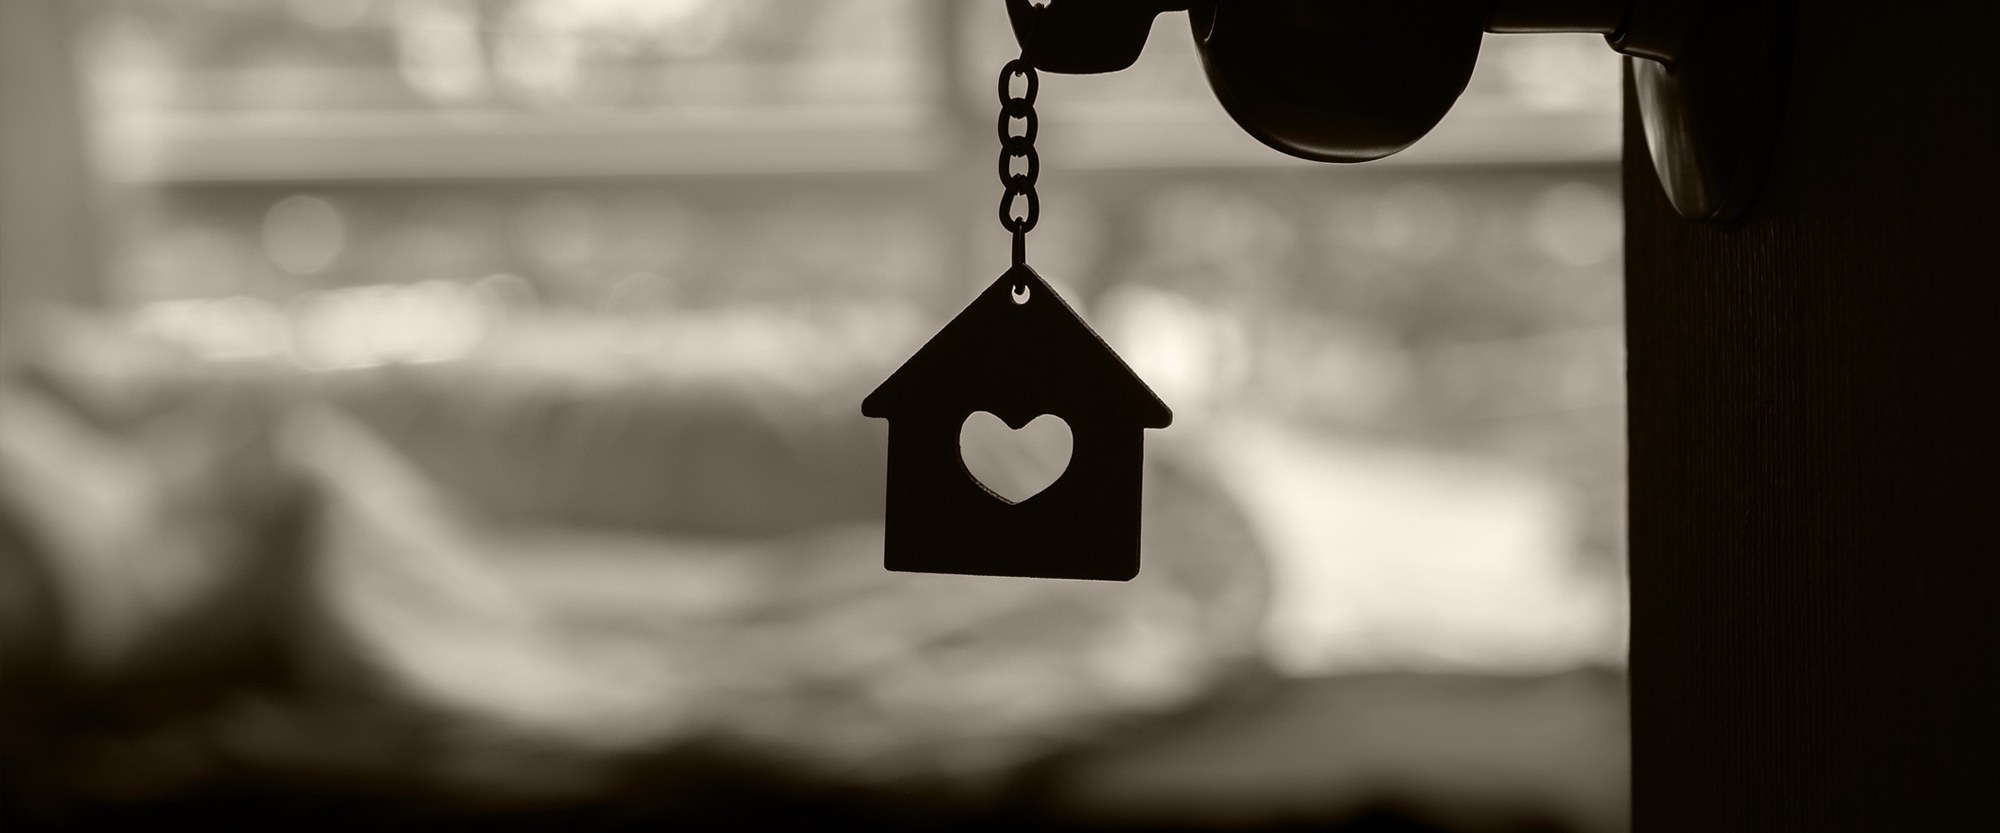 Key in door with a house with a heart keychain dangling